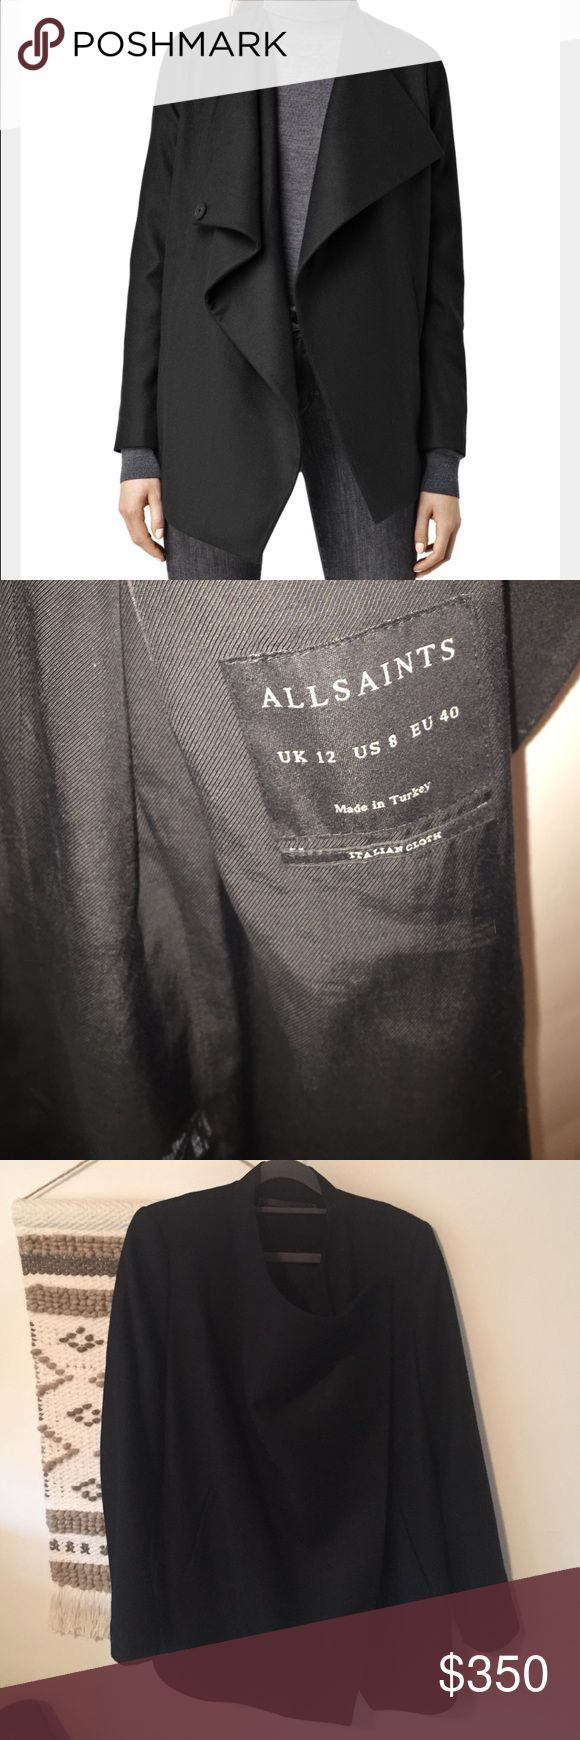 All saints sold out Ora Jacket USA size 8. New without tags! I bought it and realized I already have the same jacket! Thought this one was longer! Never worn new. Black very fine wool. Stunning in any shape! All Saints Jackets & Coats